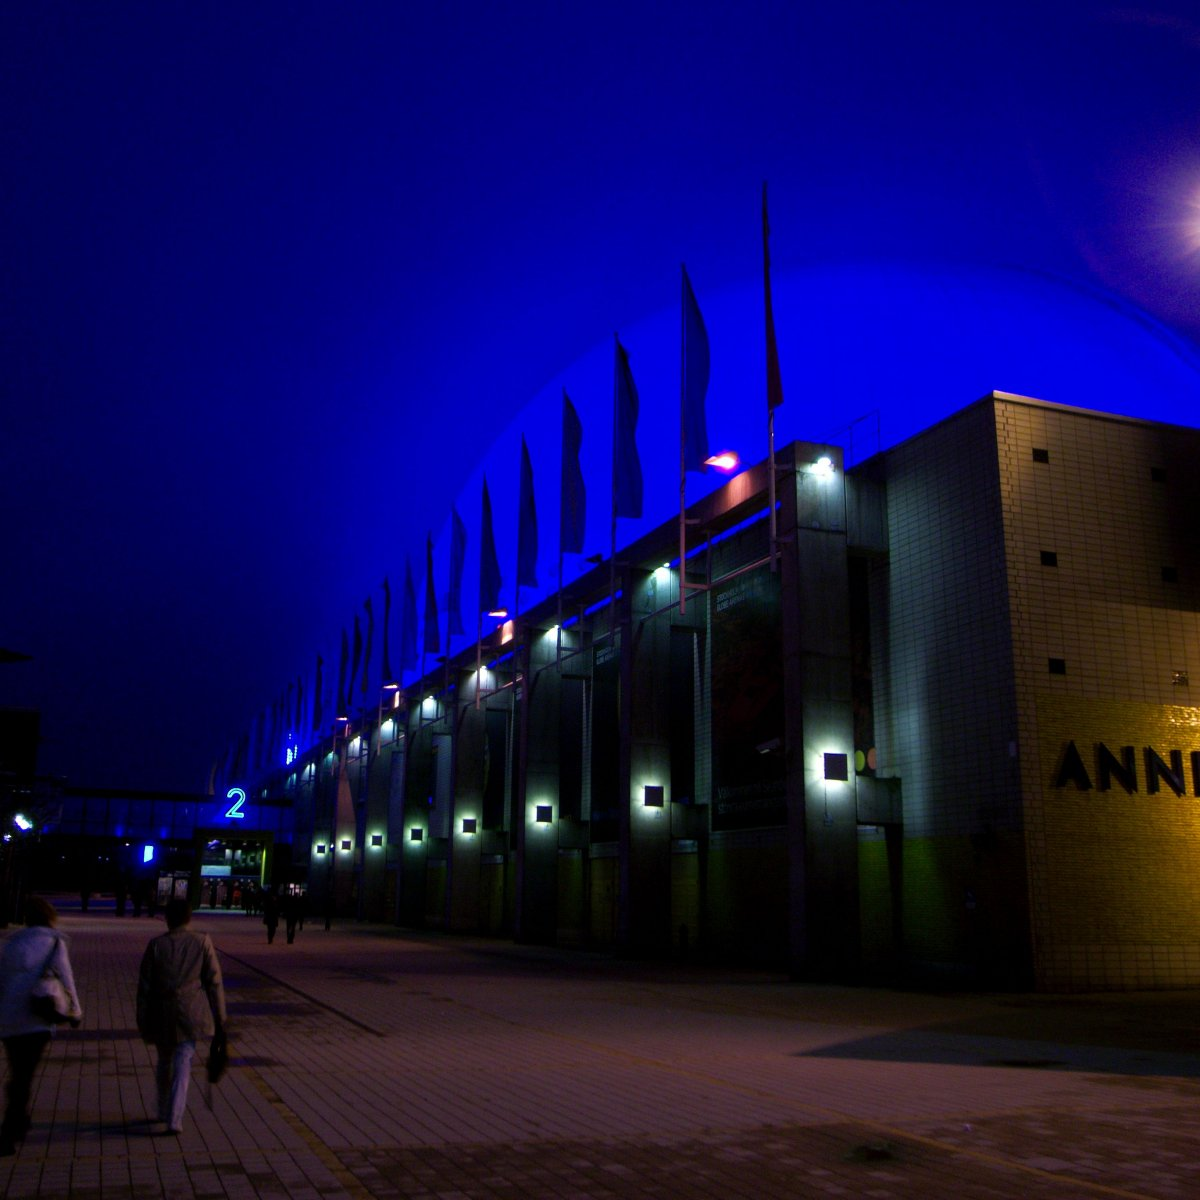 Exterior Image of Annexet at night